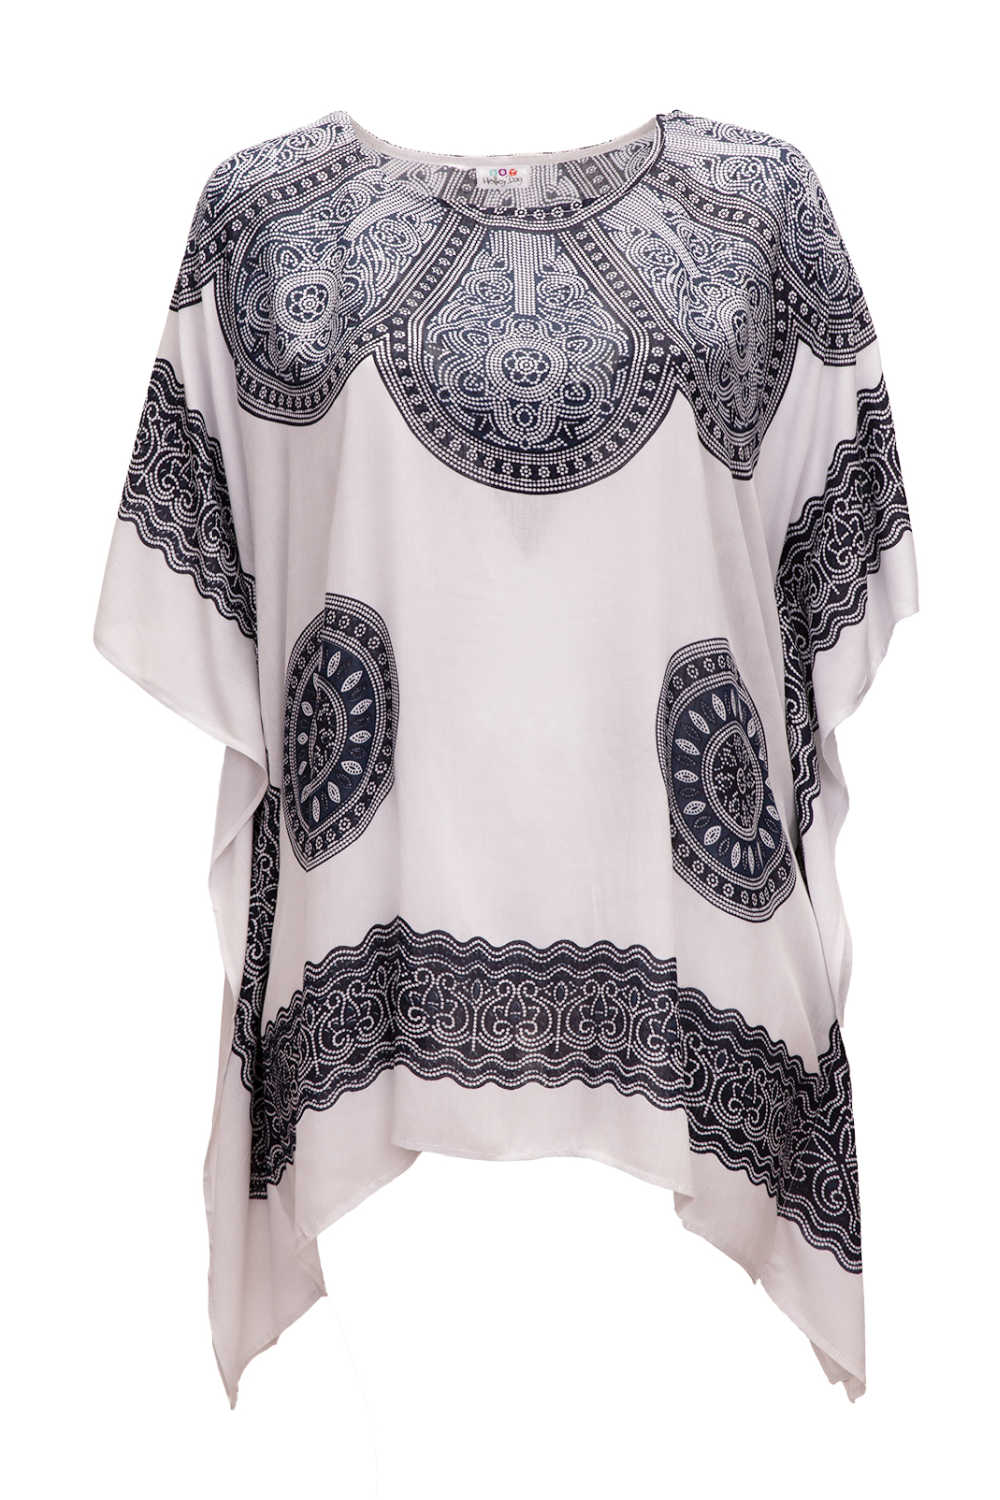 short-kaftan-dress-white-black-Mandala-design